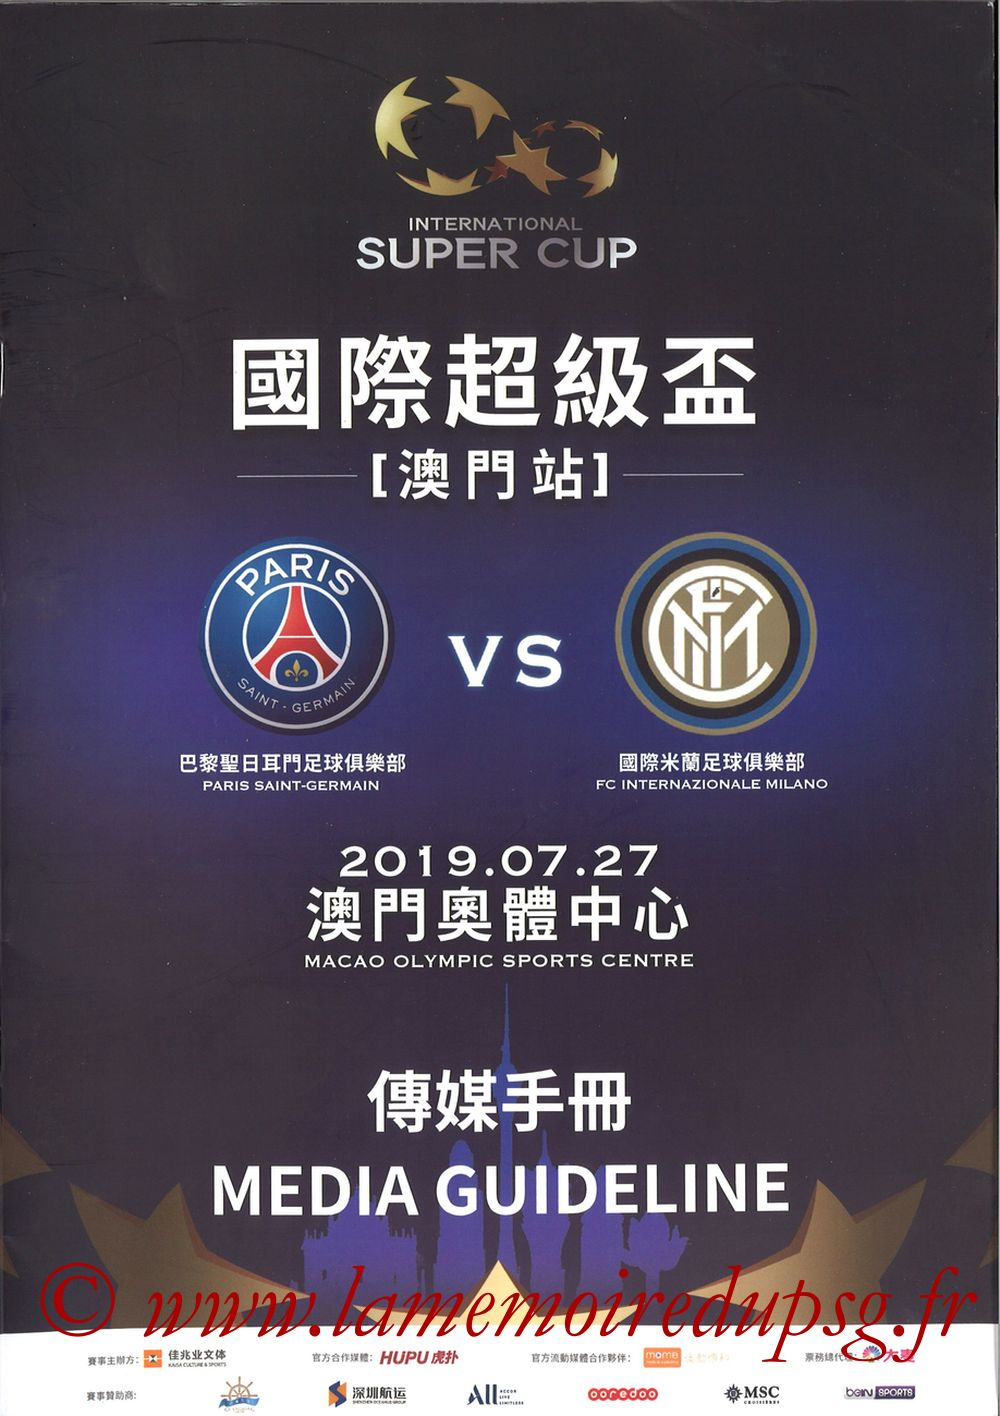 2019-07-27  PSG-Inter (International Super Cup à Macau, Dossier de presse)